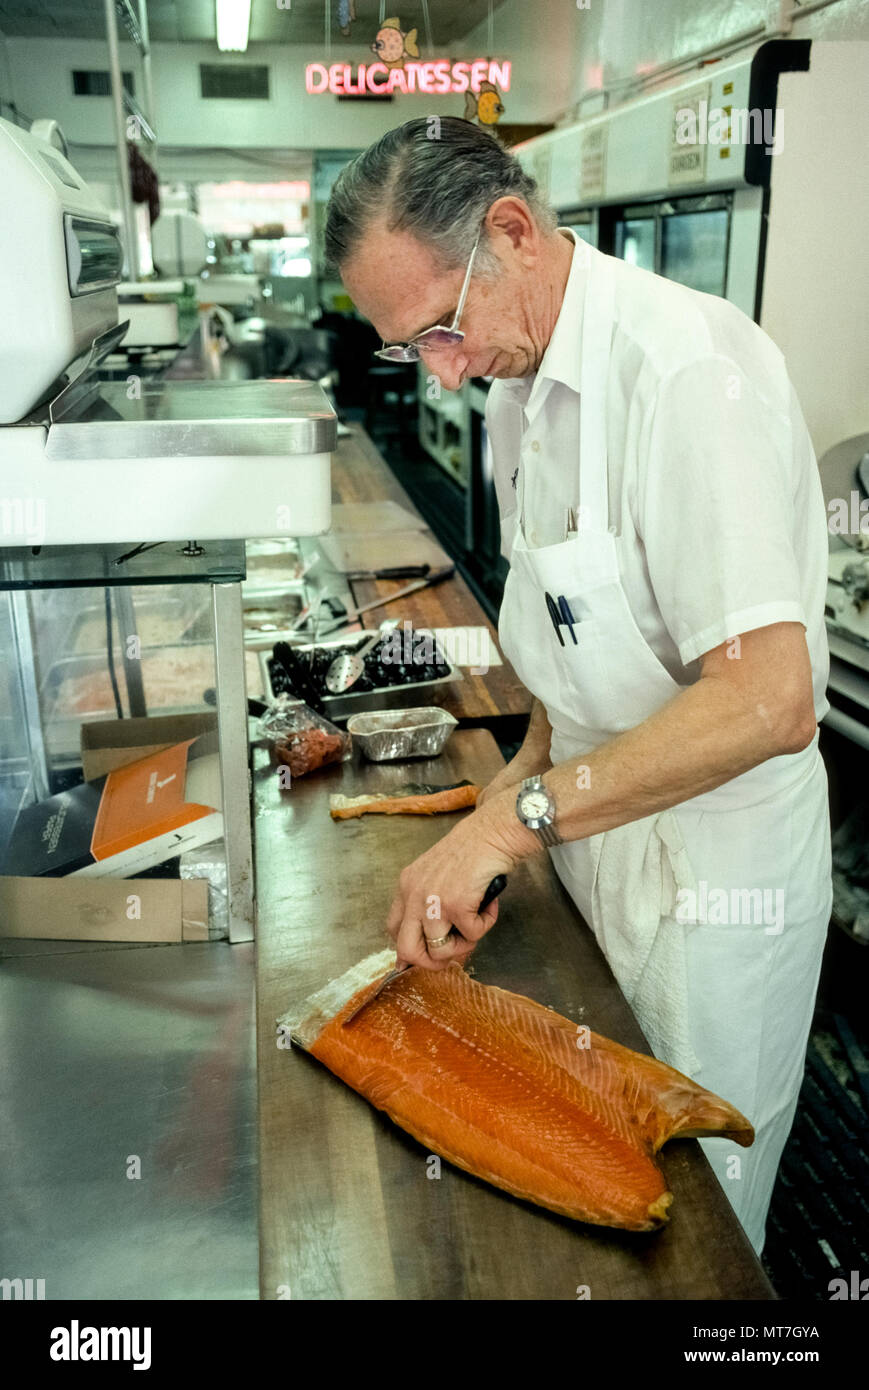 The owner of a Jewish delicatessen prepares smoked salmon to serve to his customers in the South Beach section of Miami Beach, Florida, USA. Ever since opening in the mid-1940s, The Delicacy Shop served as a neighborhood center for elderly New Yorkers who retired to the Sunshine State after World War II. That famous food store has since closed its doors, as have other historic delis like Wolfie's, Pumperniks, and the Rascal House. Their clientele of Jewish retirees left the South Beach area when the beachfront rooming houses where the old folks lived were converted to trendy boutique hotels. - Stock Image